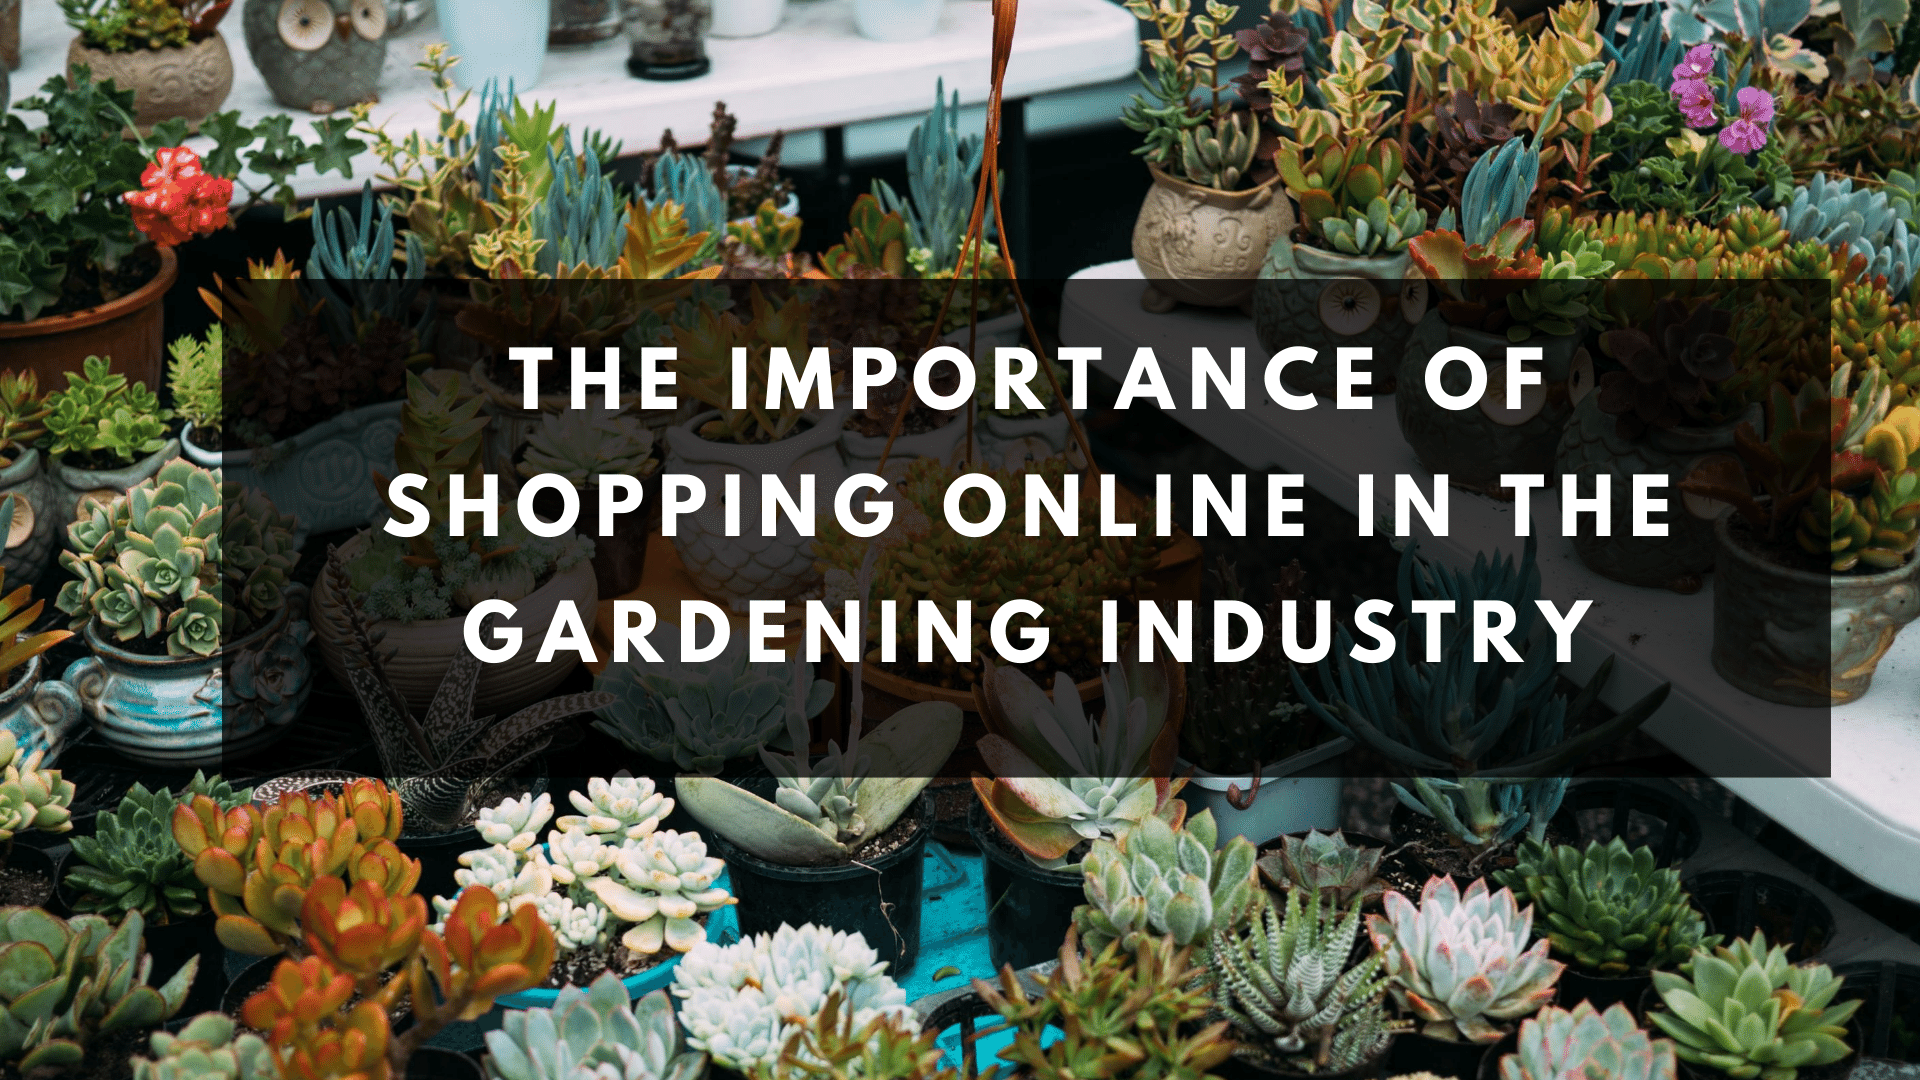 The Importance of Shopping Online in the Gardening Industry